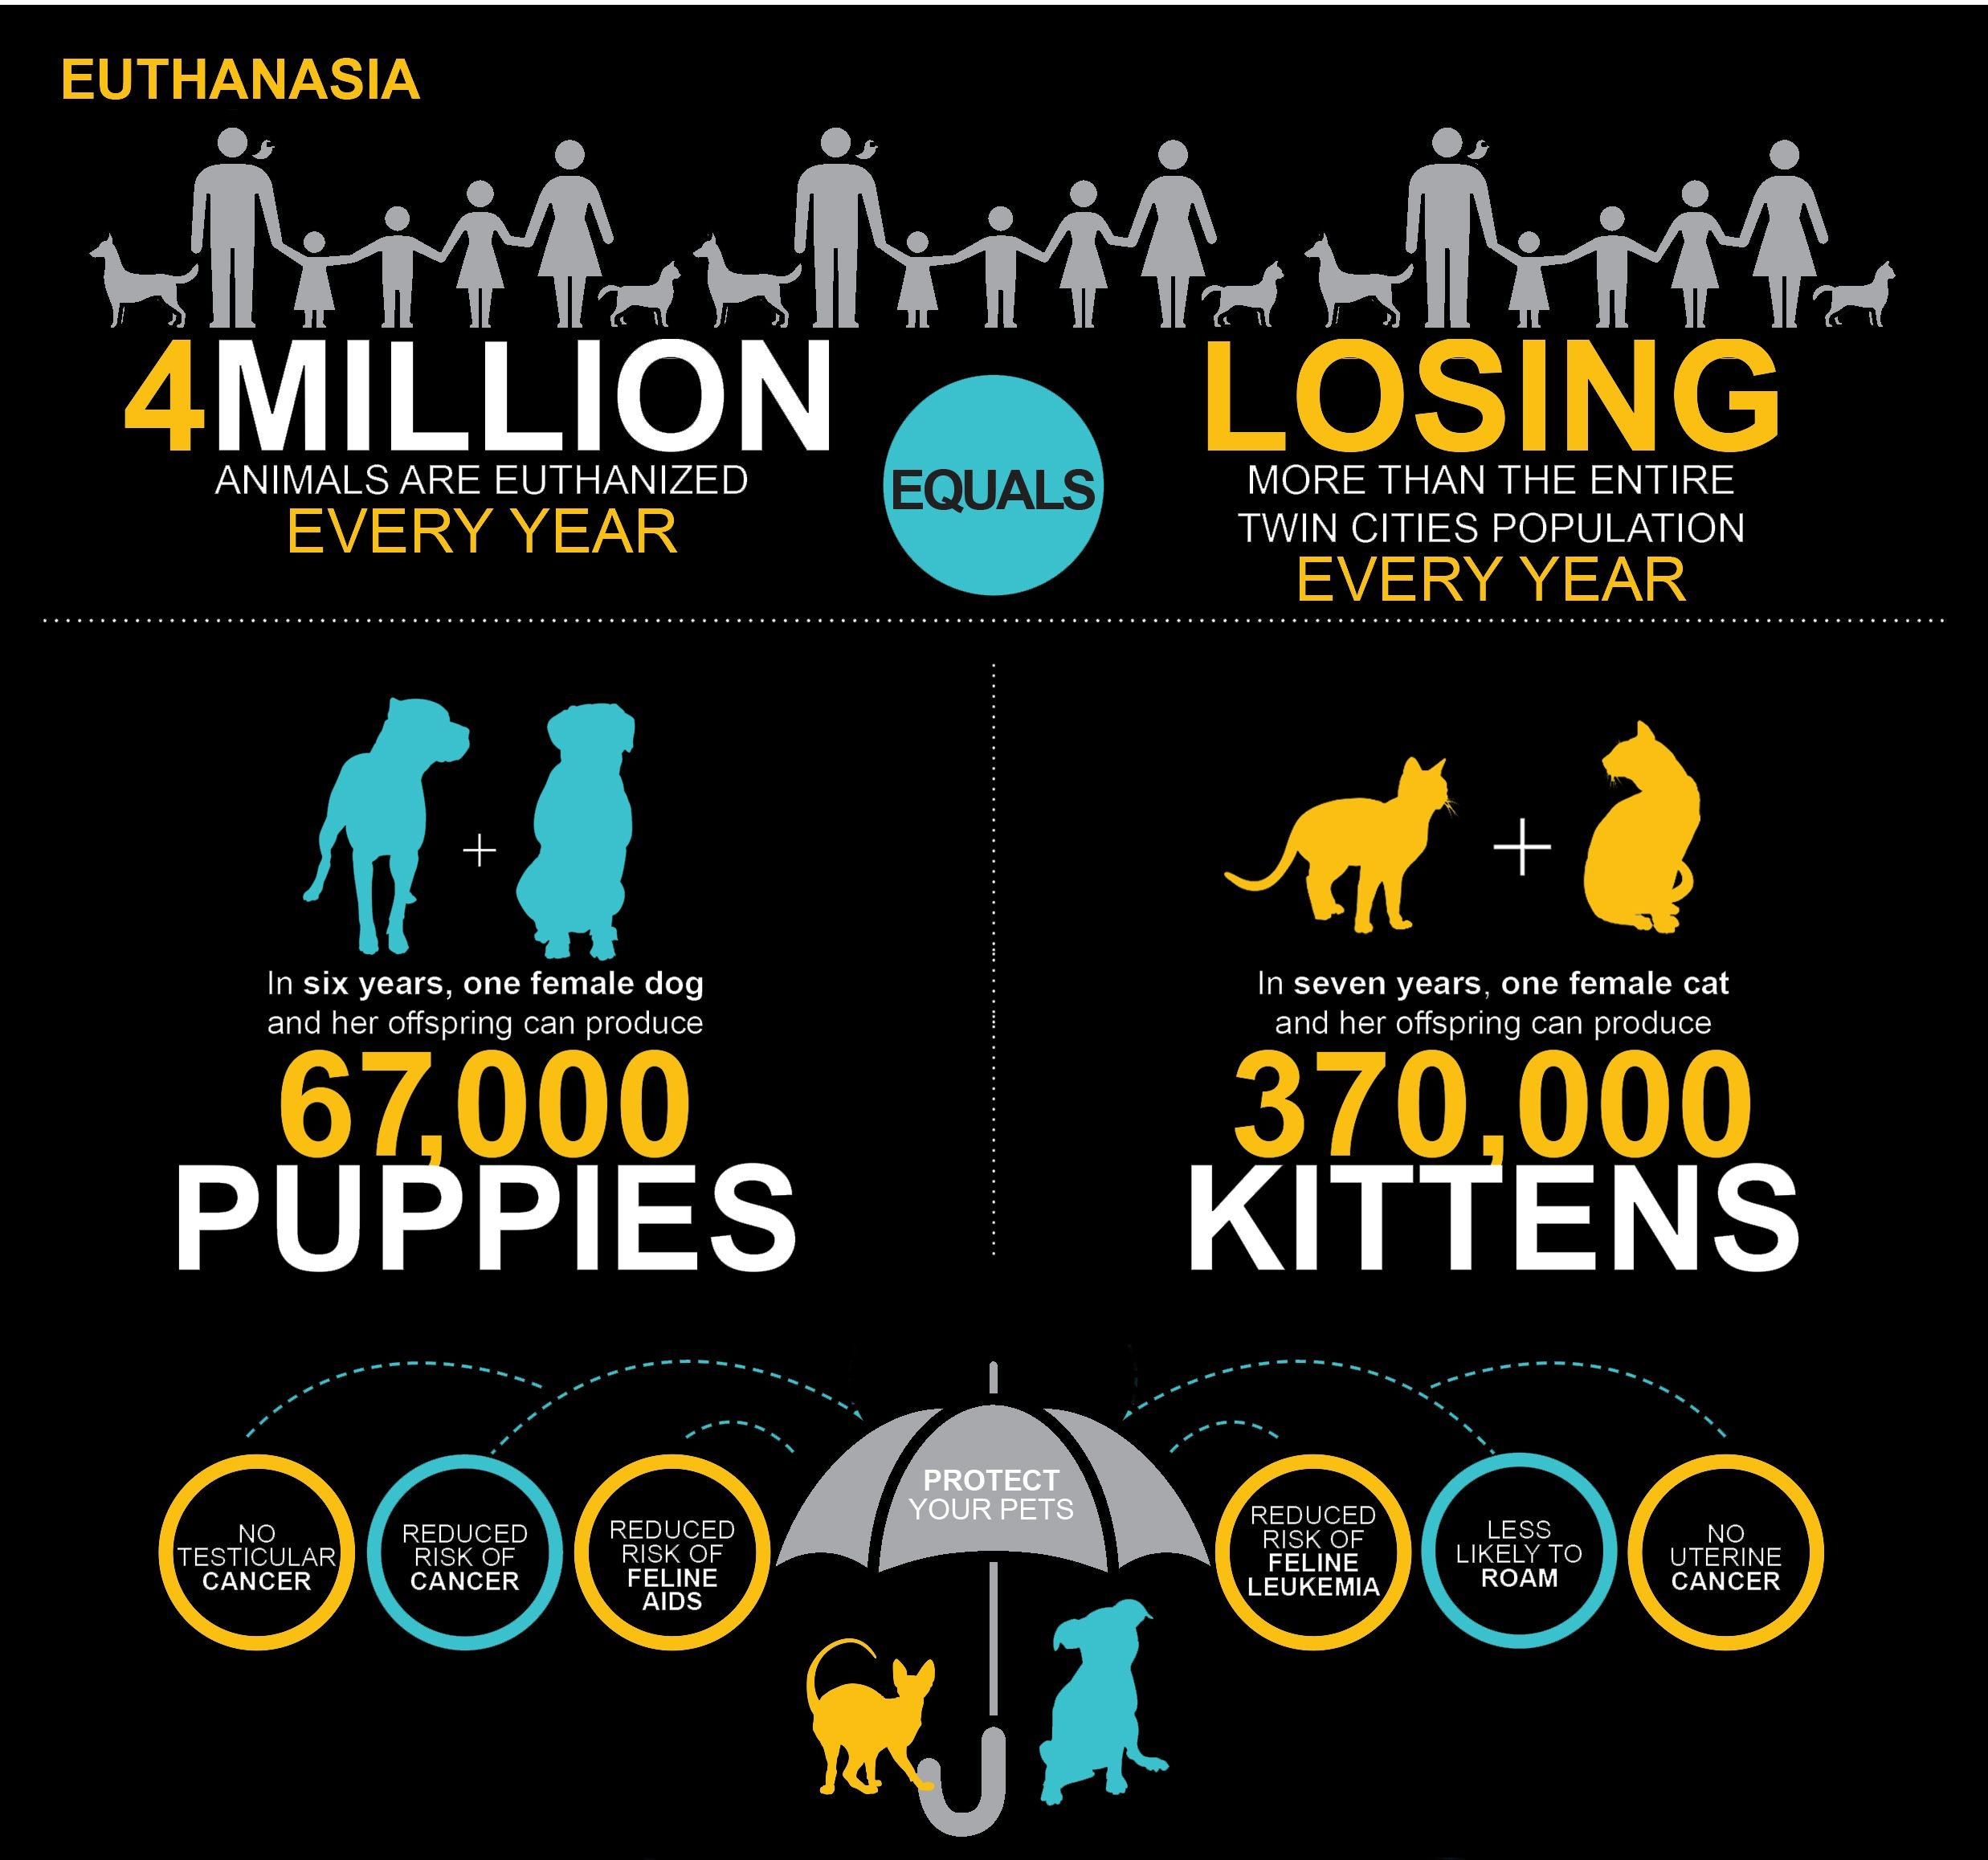 Find a lowcost Spay/Neuter program near you by selecting